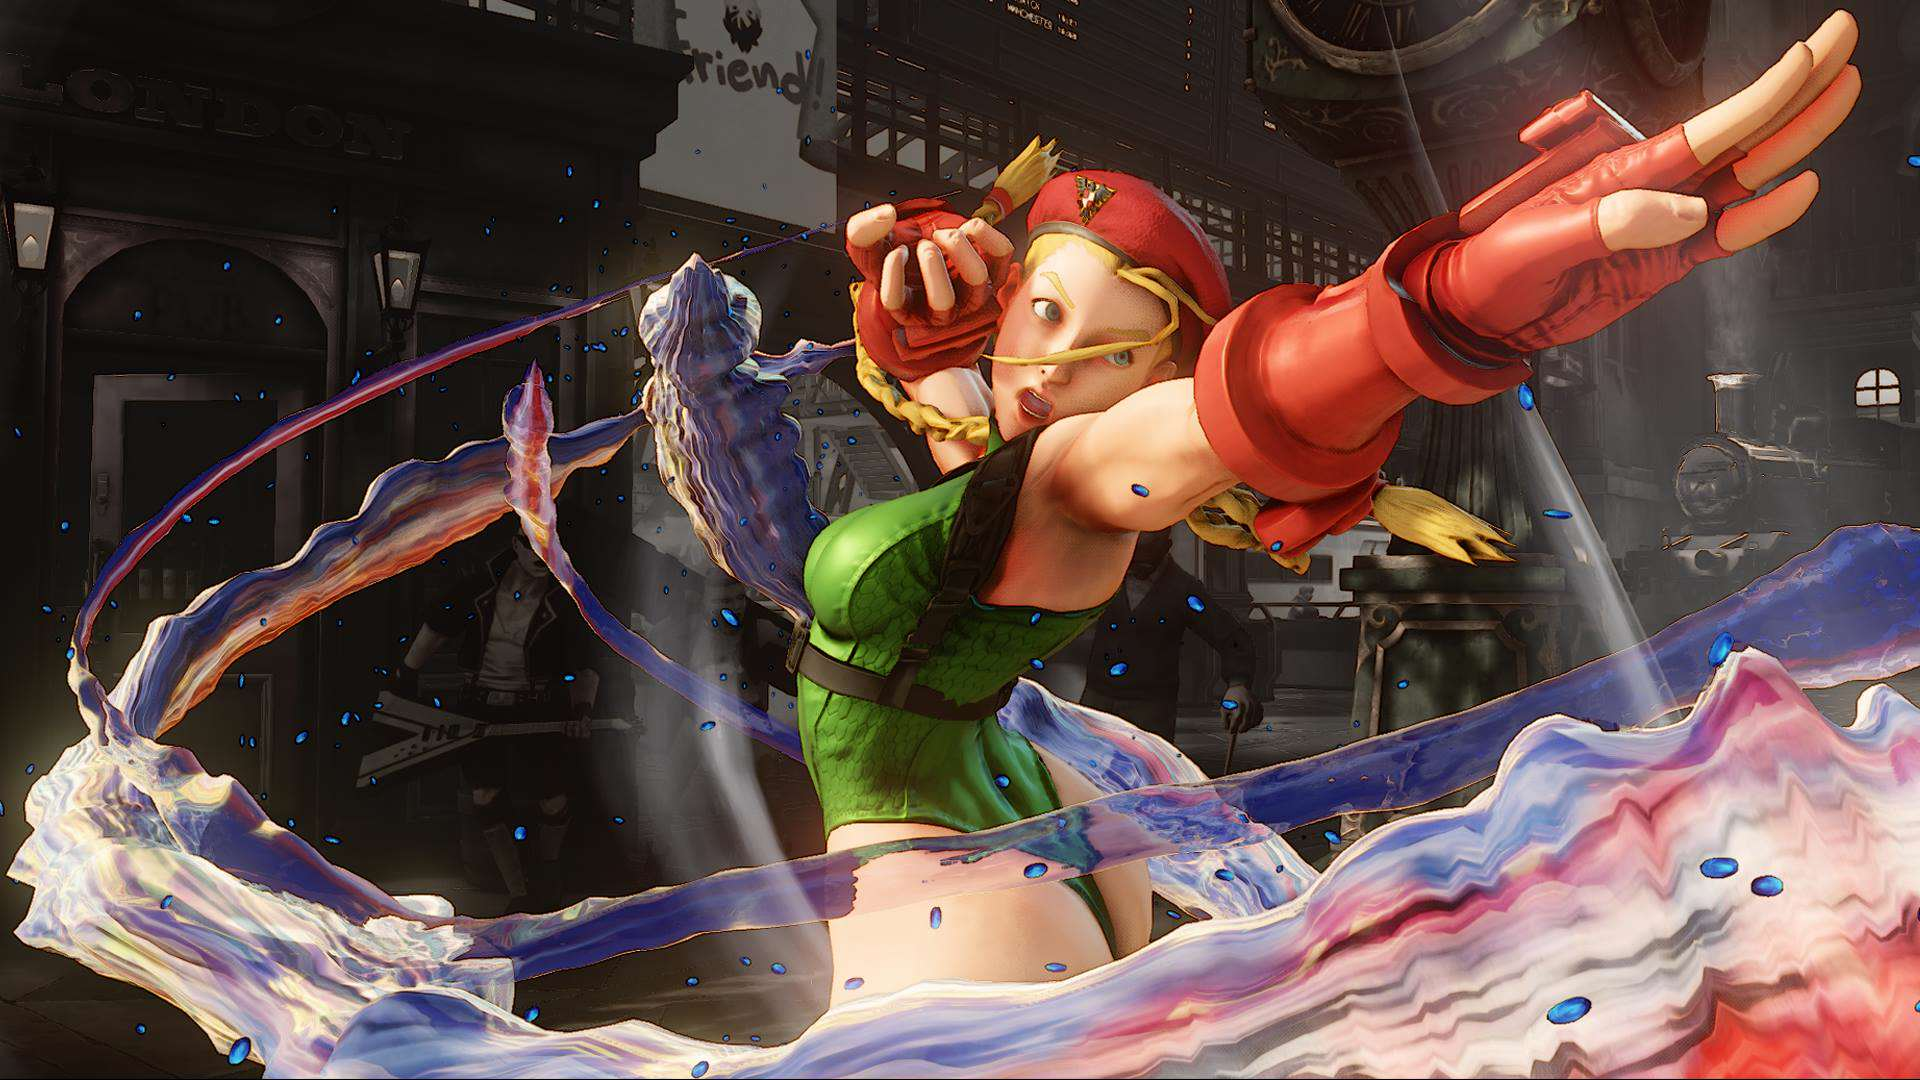 Street Fighter V Early Street Fighter V Designs Show Some Pretty Weird Fighters